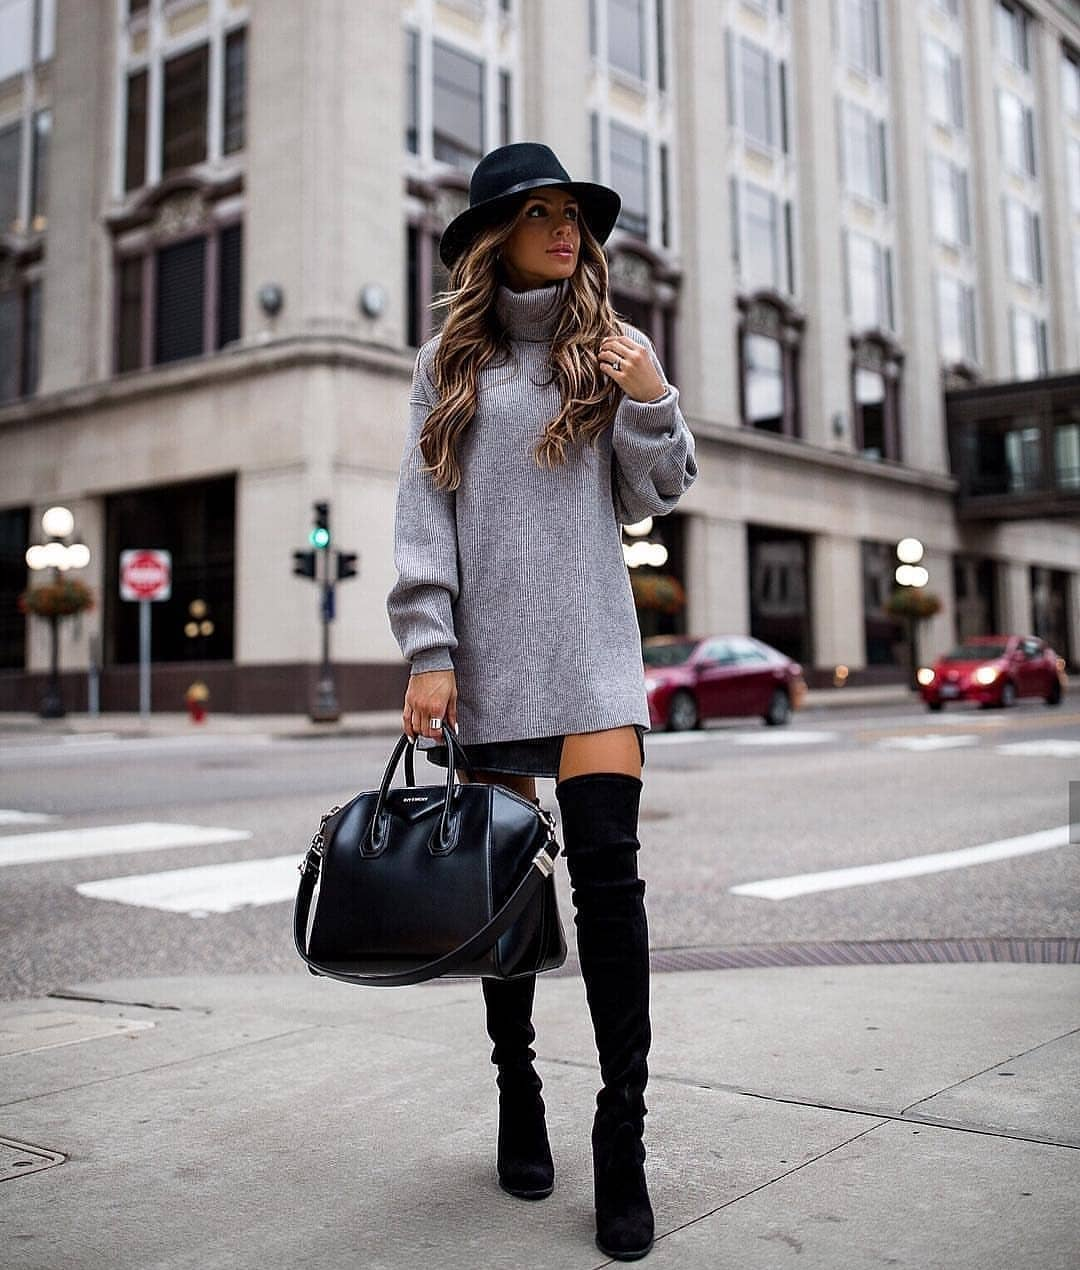 Grey Sweater Dress And Suede OTK Boots In Black For Fall 2019